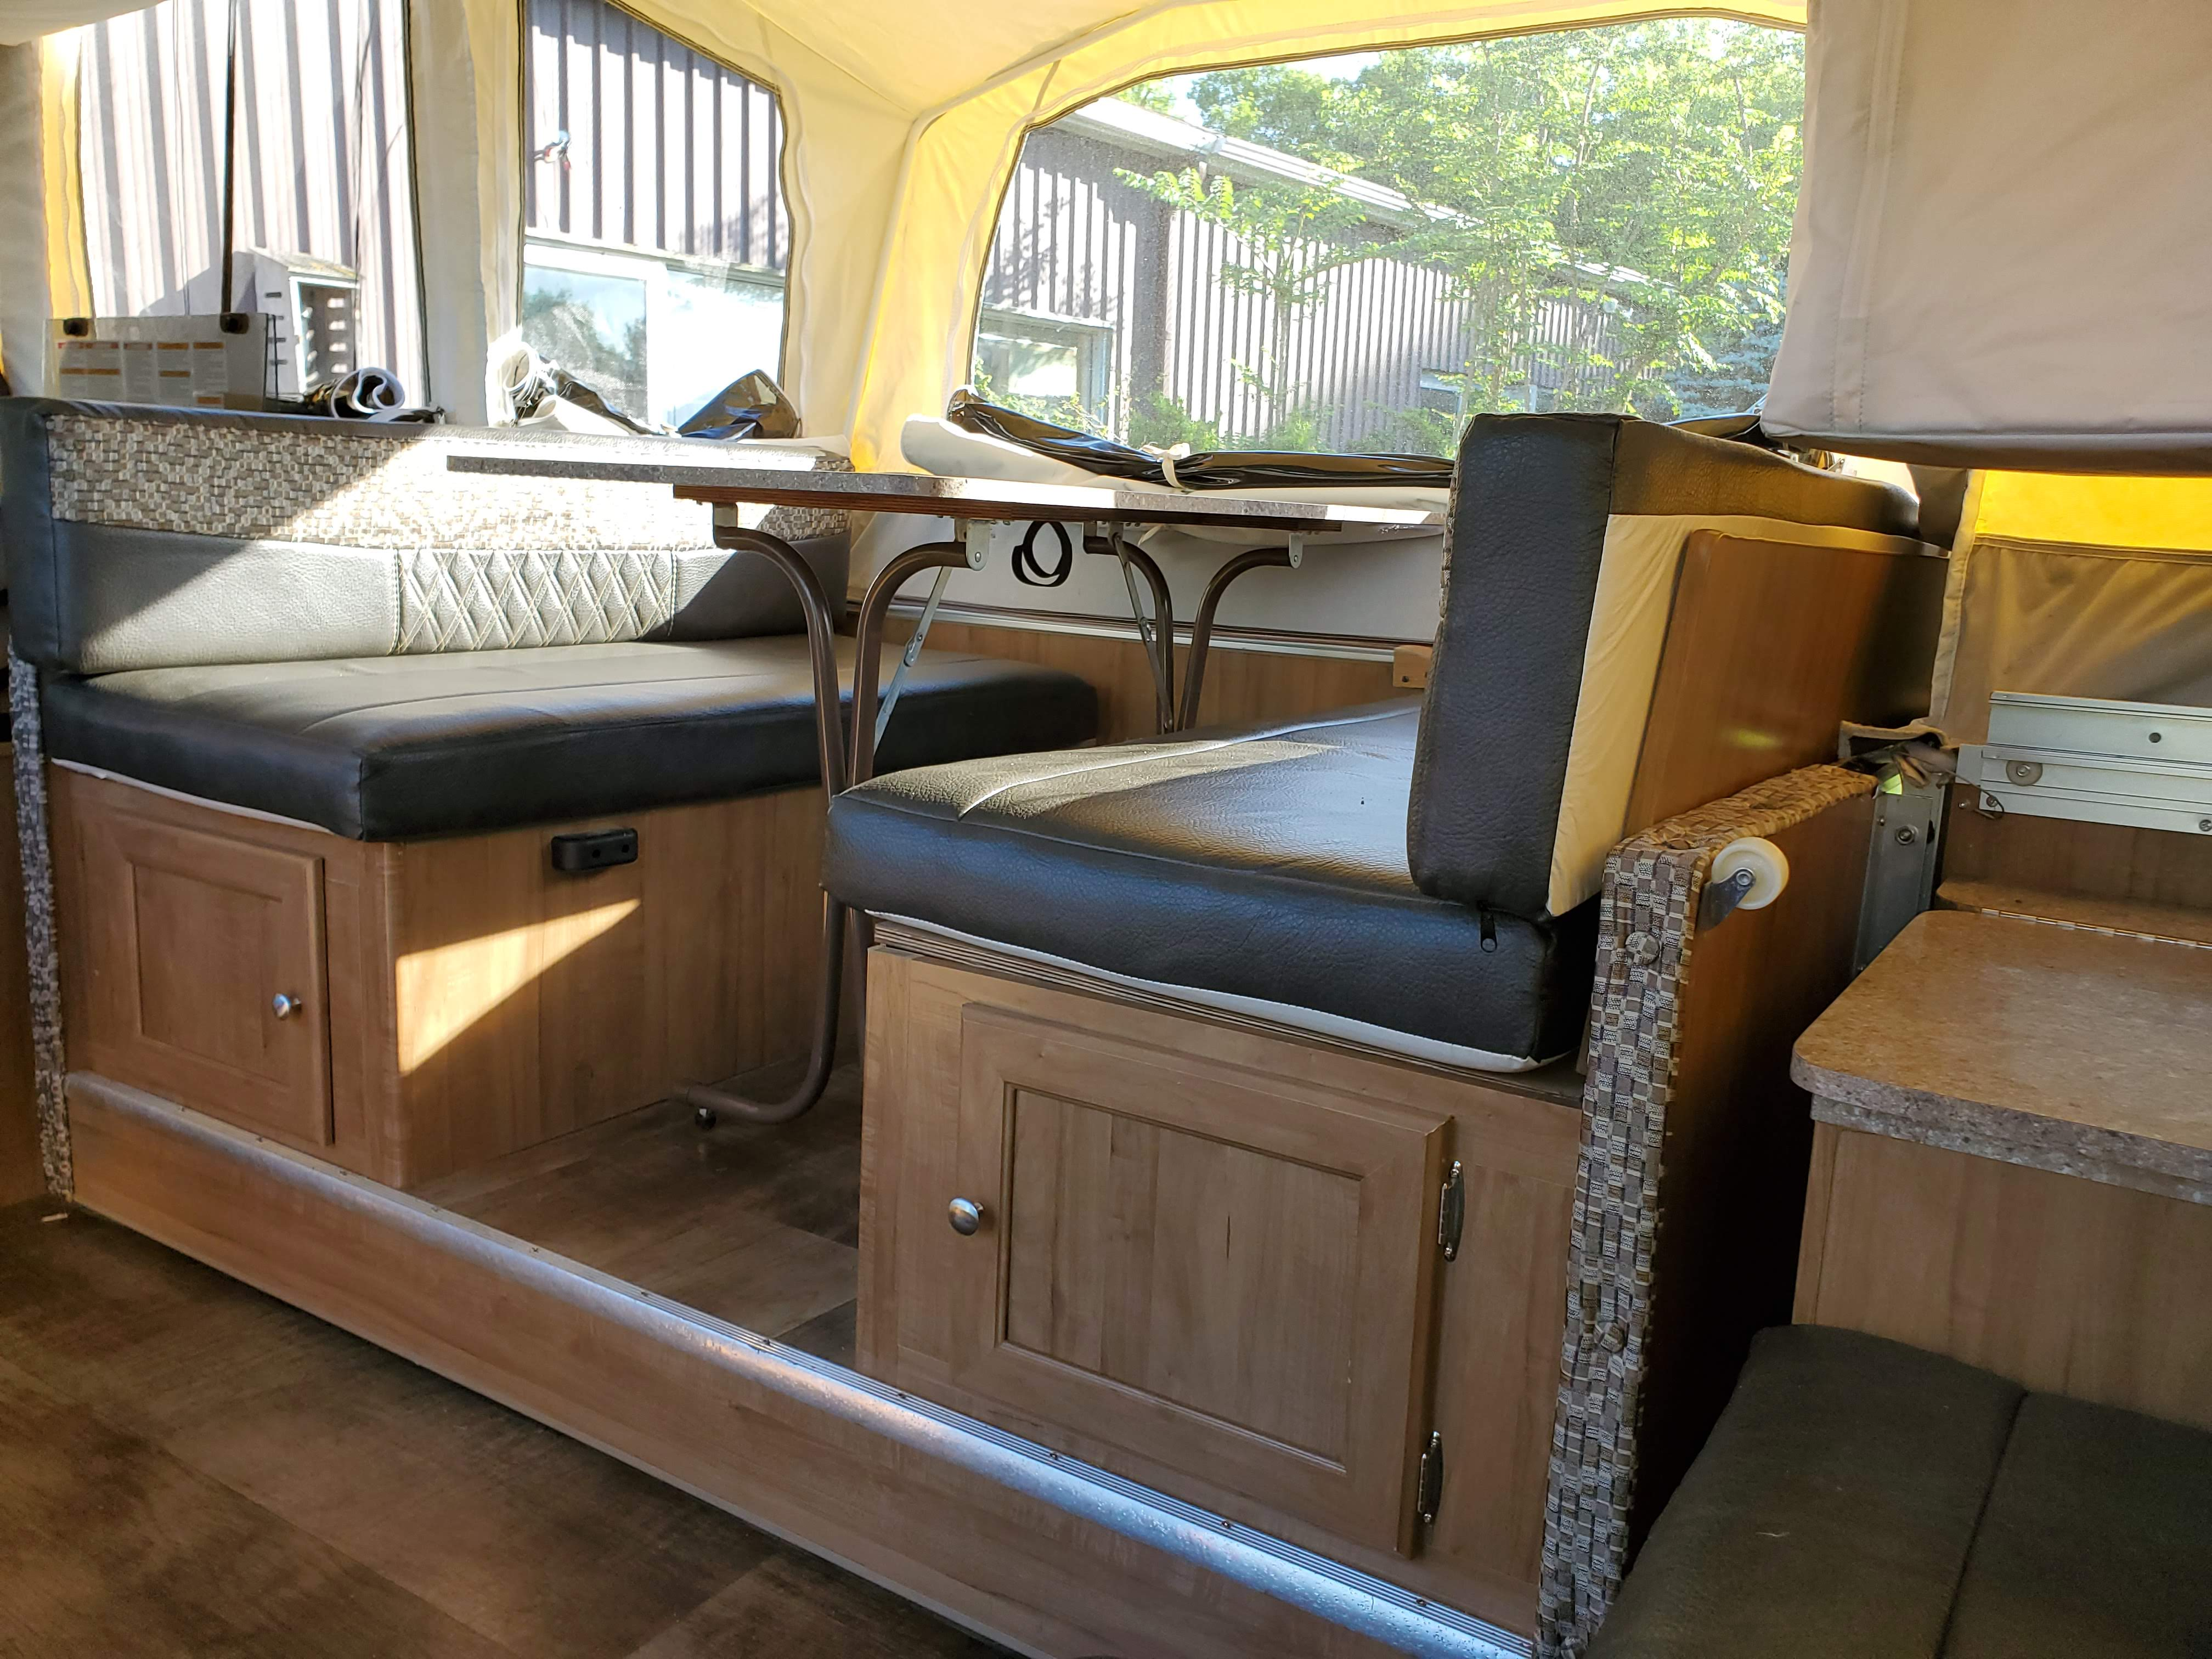 Pull out eating area adds space and can convert to a bed. Forest River Rockwood Premier 2017